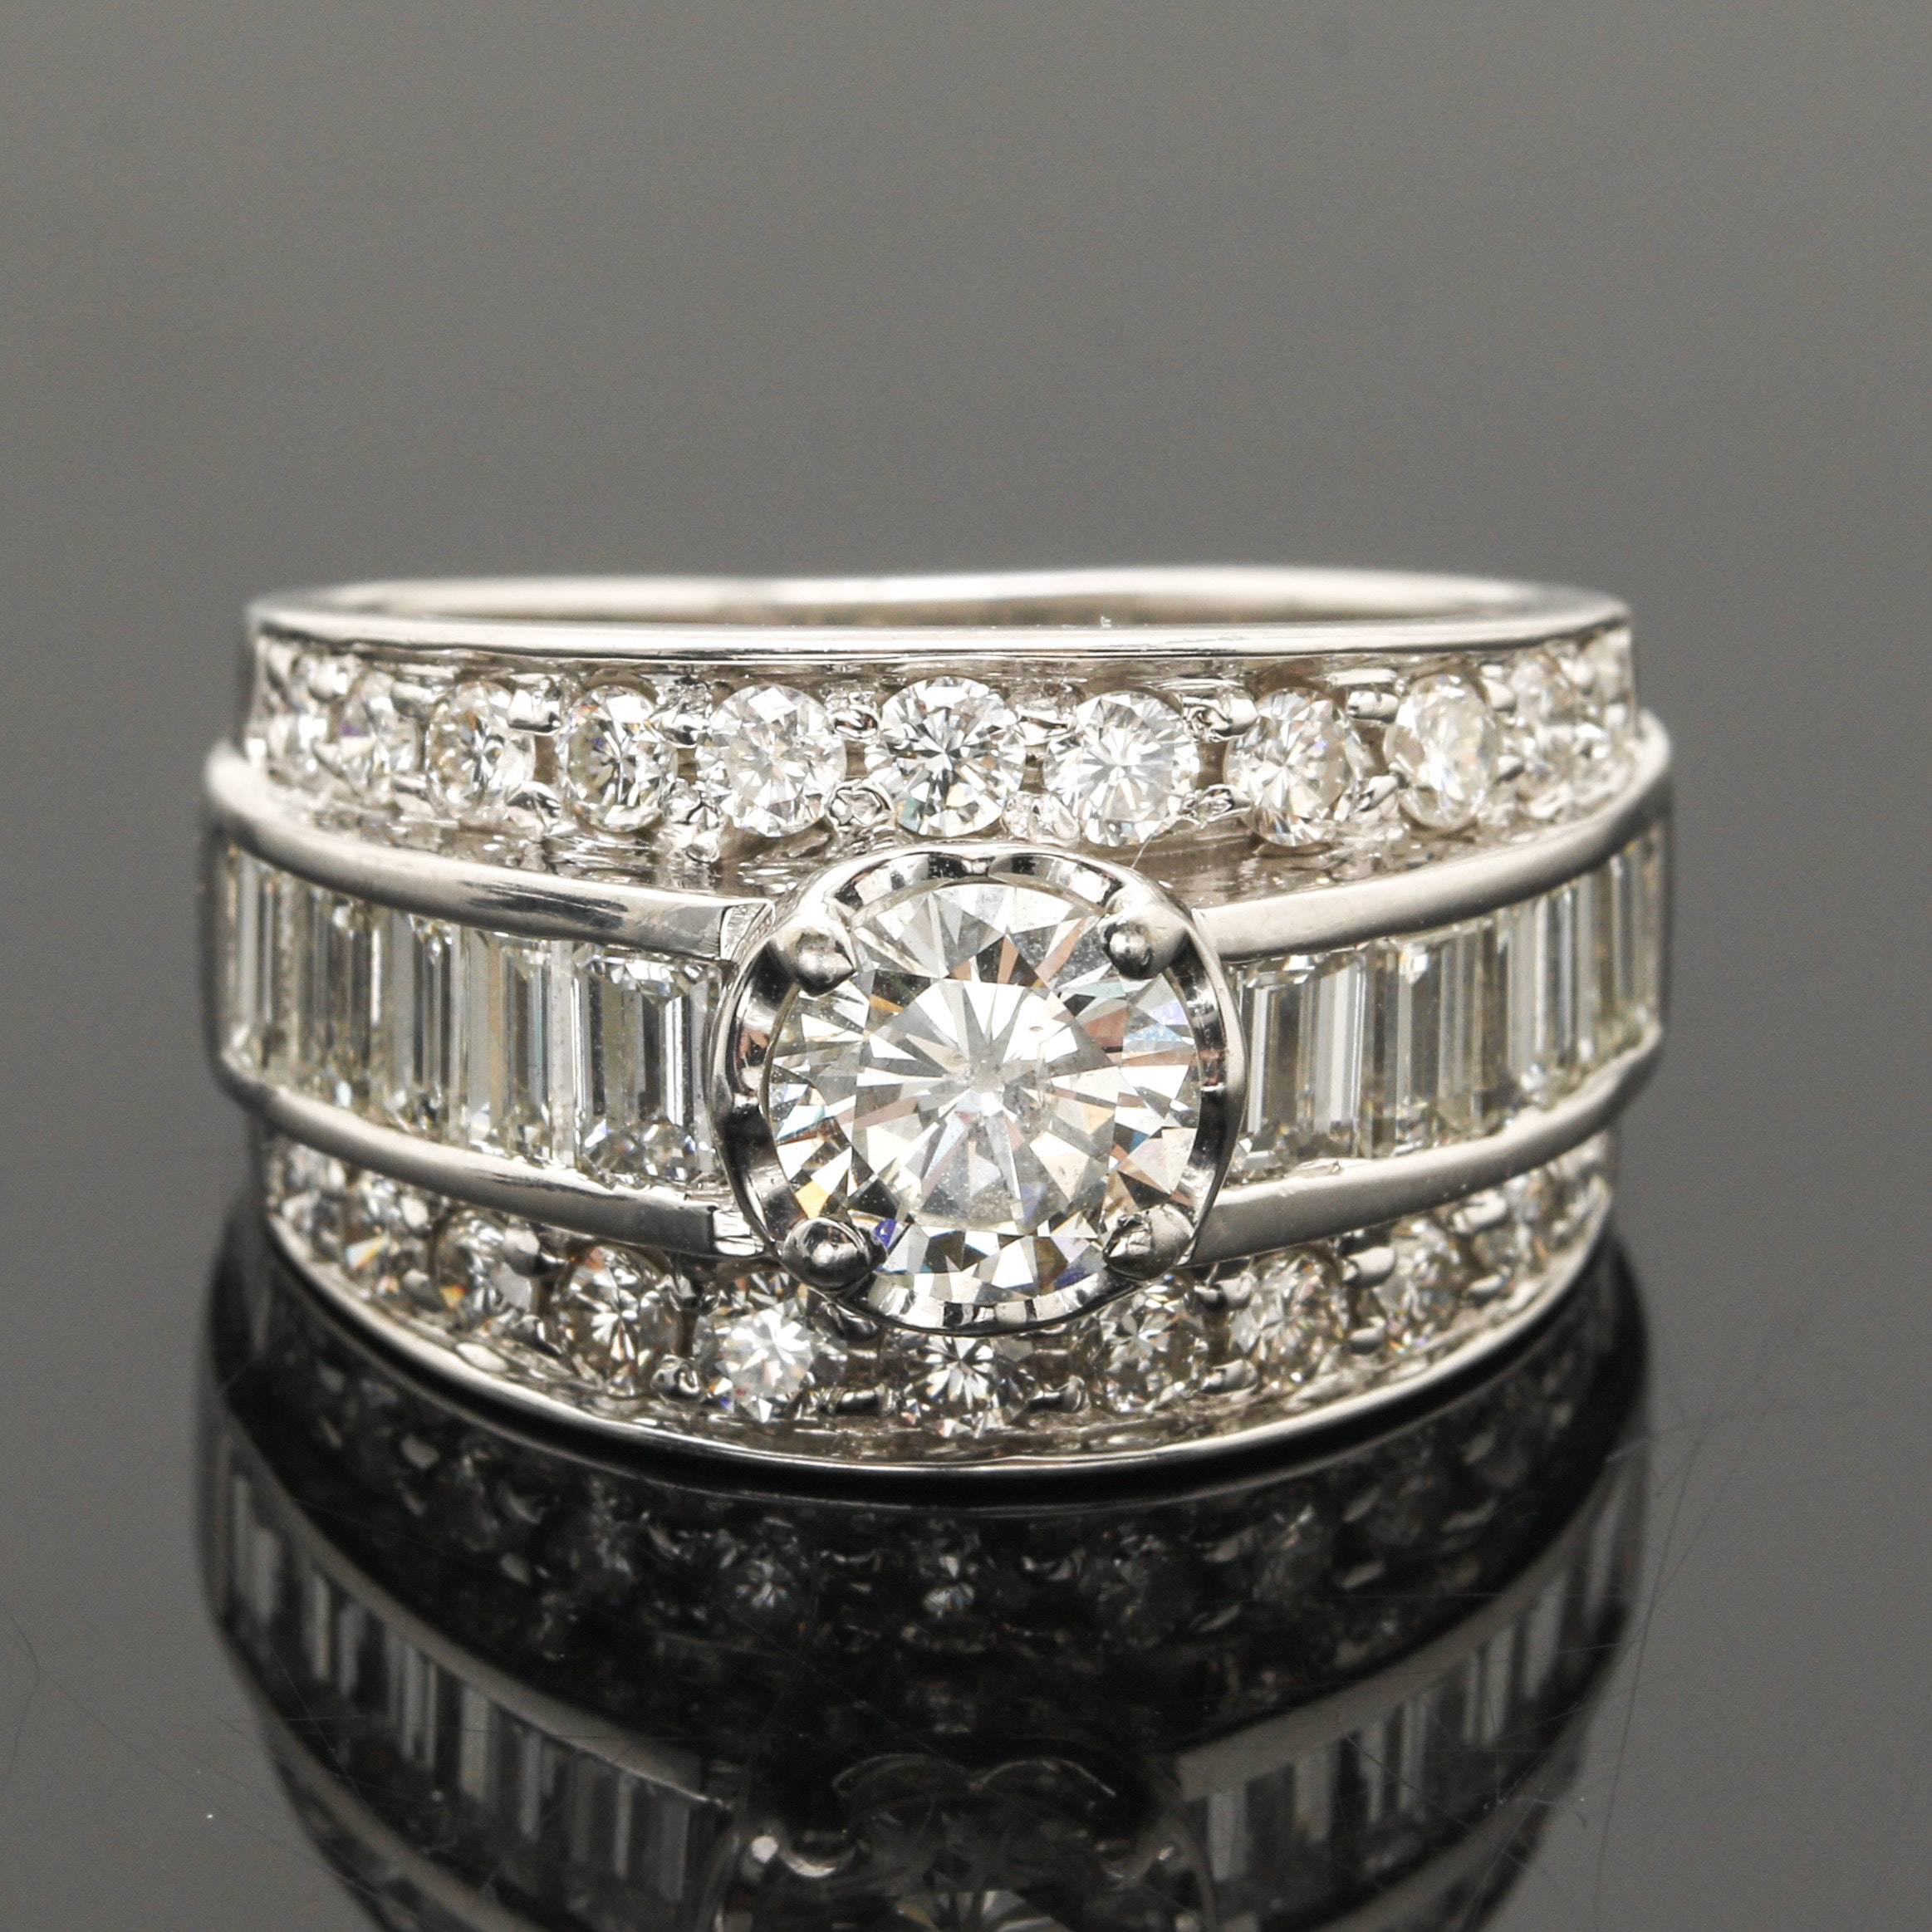 14K White Gold 3.46 CTW Diamond Ring